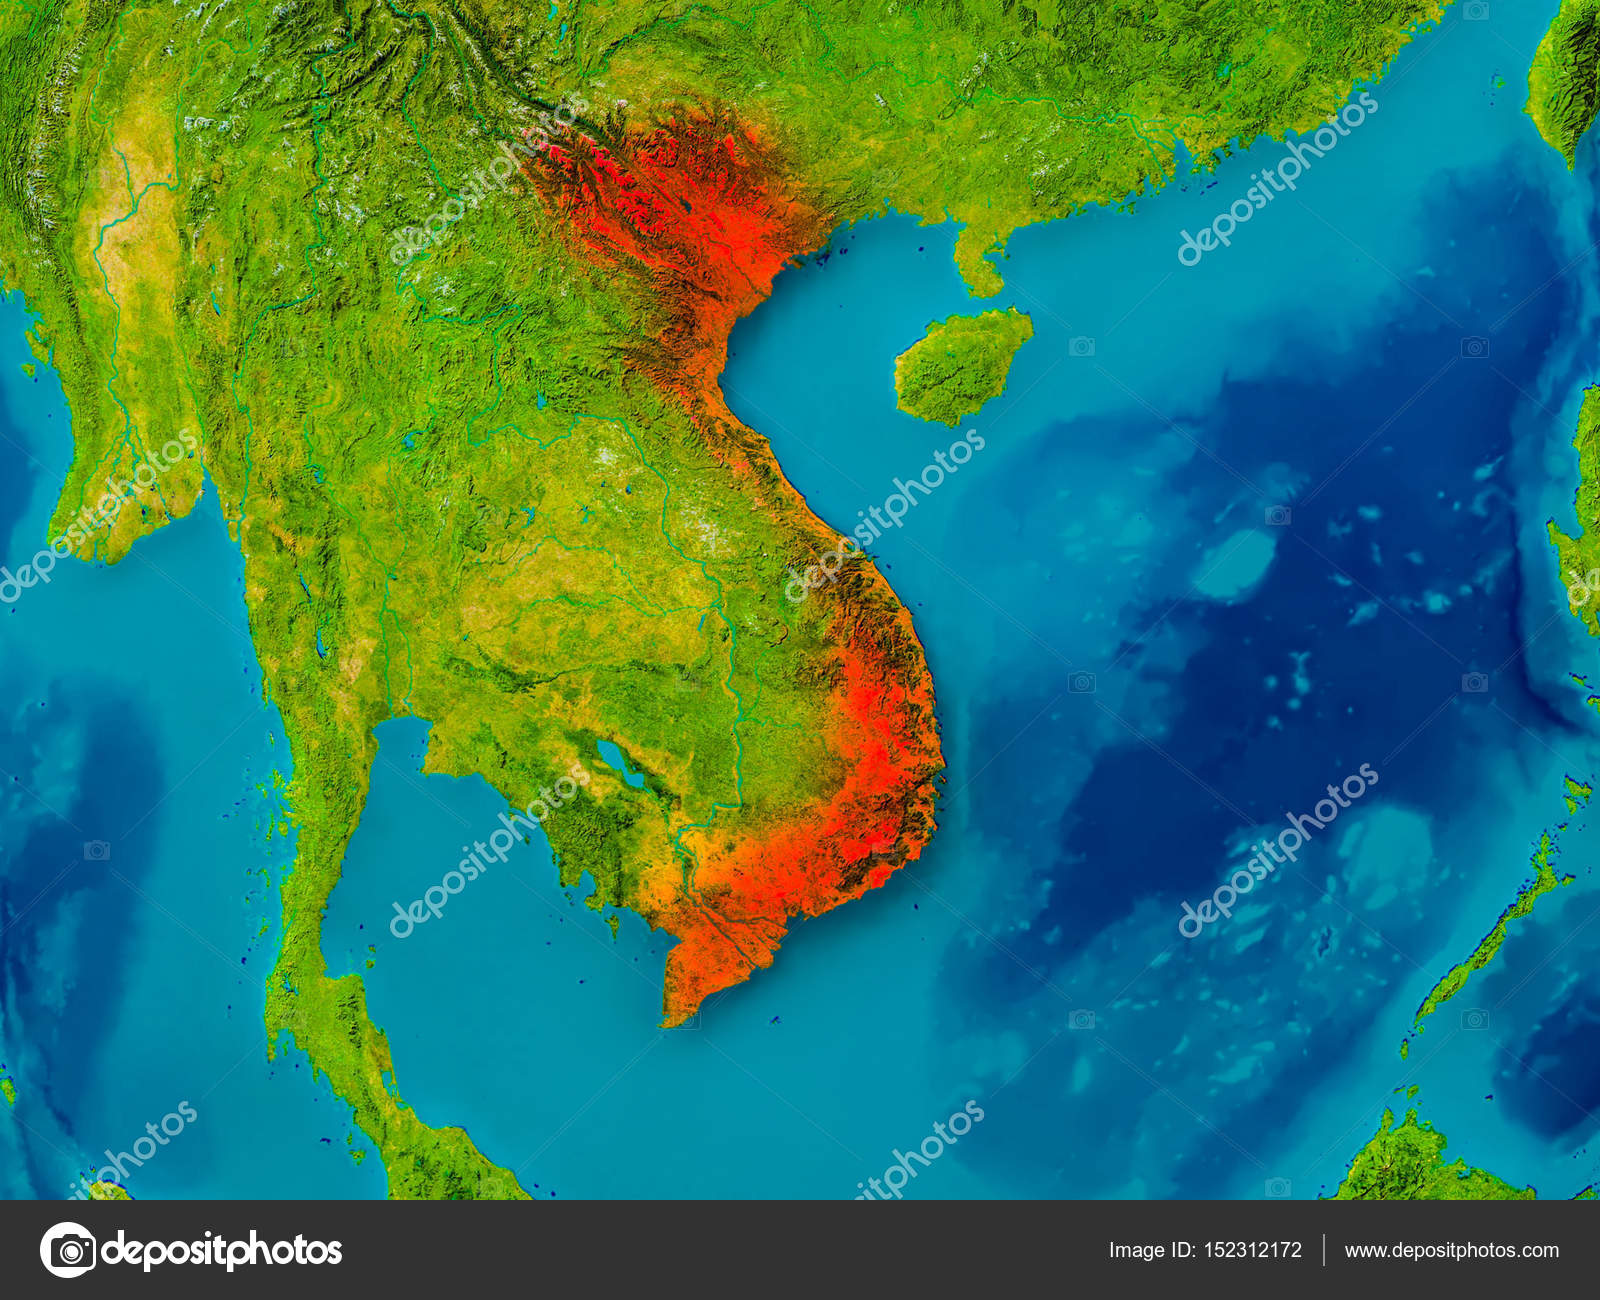 Vietnam physical map wyoroadfo map vietnam on physical map stock photo tomgriger 152312172 depositphotos 152312172 stock photo vietnam on physical map stock photo vietnam on physical publicscrutiny Images